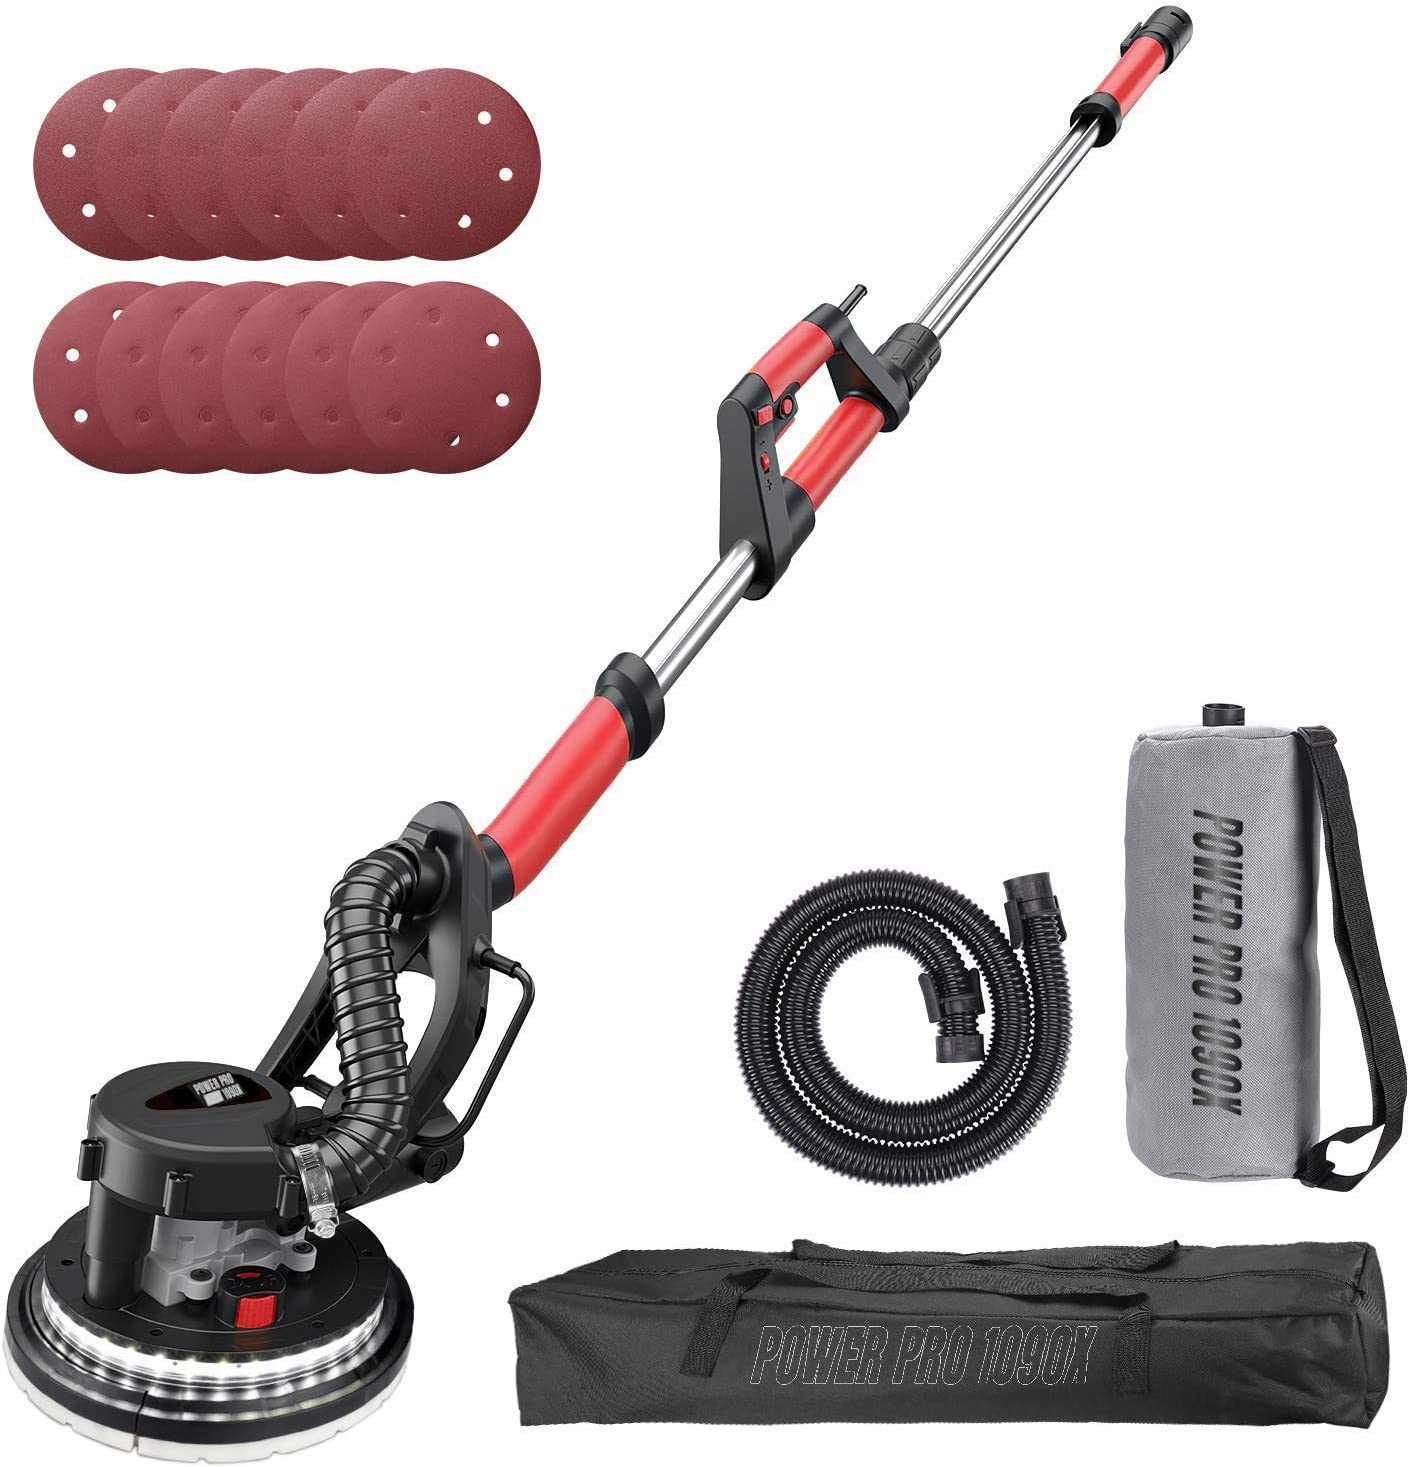 POWER PRO 1090X Electric Drywall Sander - Variable Speed 500-1800RPM, 800W, with Automatic Vacuum System for Dust Absorption, LED Light, and Carry Bag (1090X)